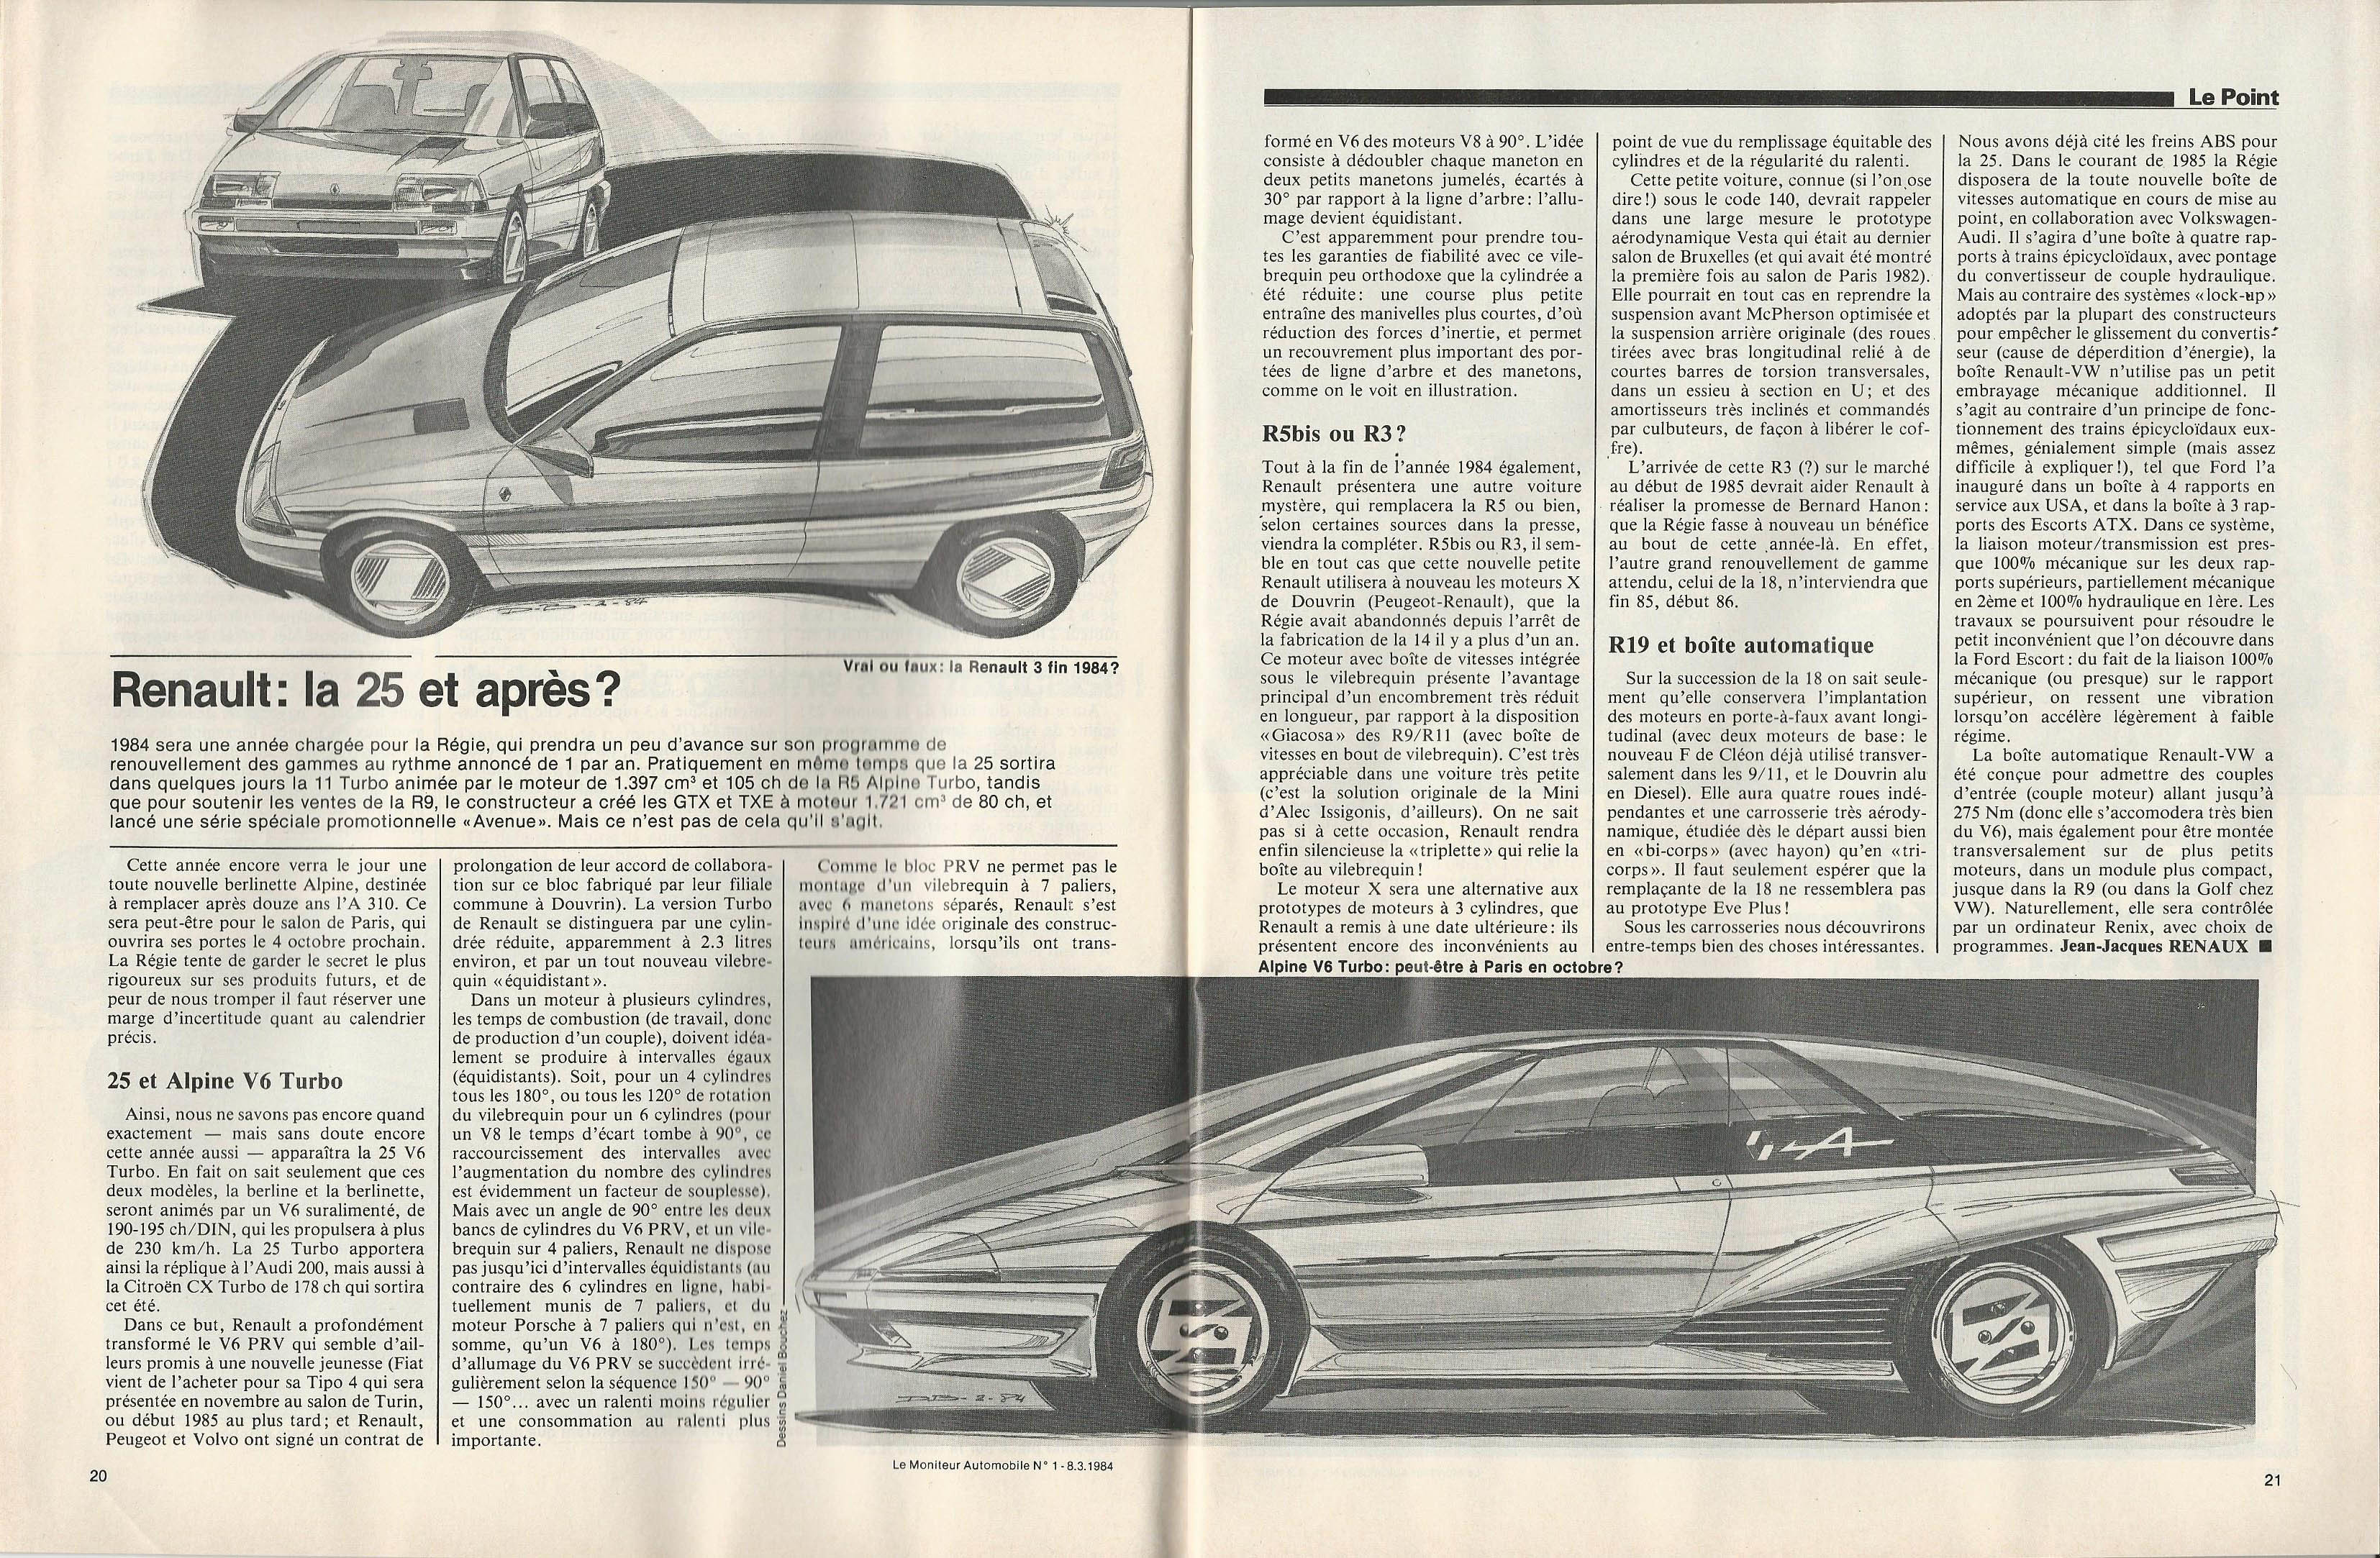 Moniteur Automobile 01 - 08 Mars 1984 (11)